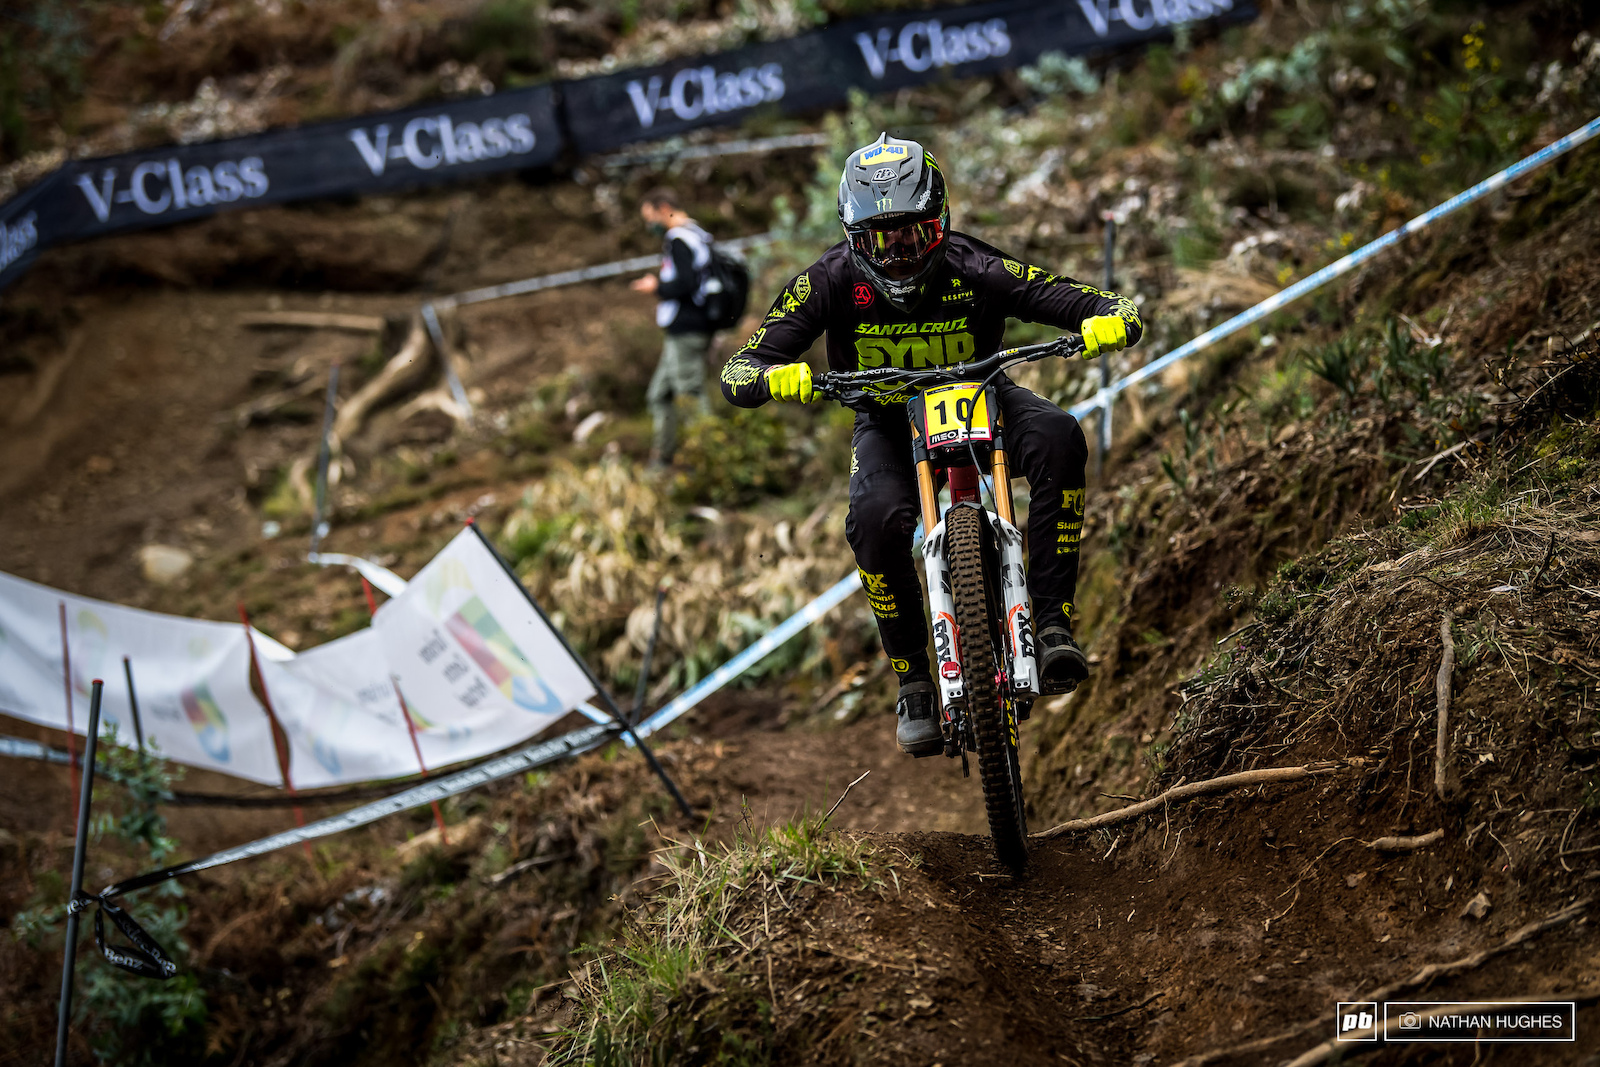 Luca Shaw will look to shut down his team mates tomorrow and if not just join in the Syndicate podium party.